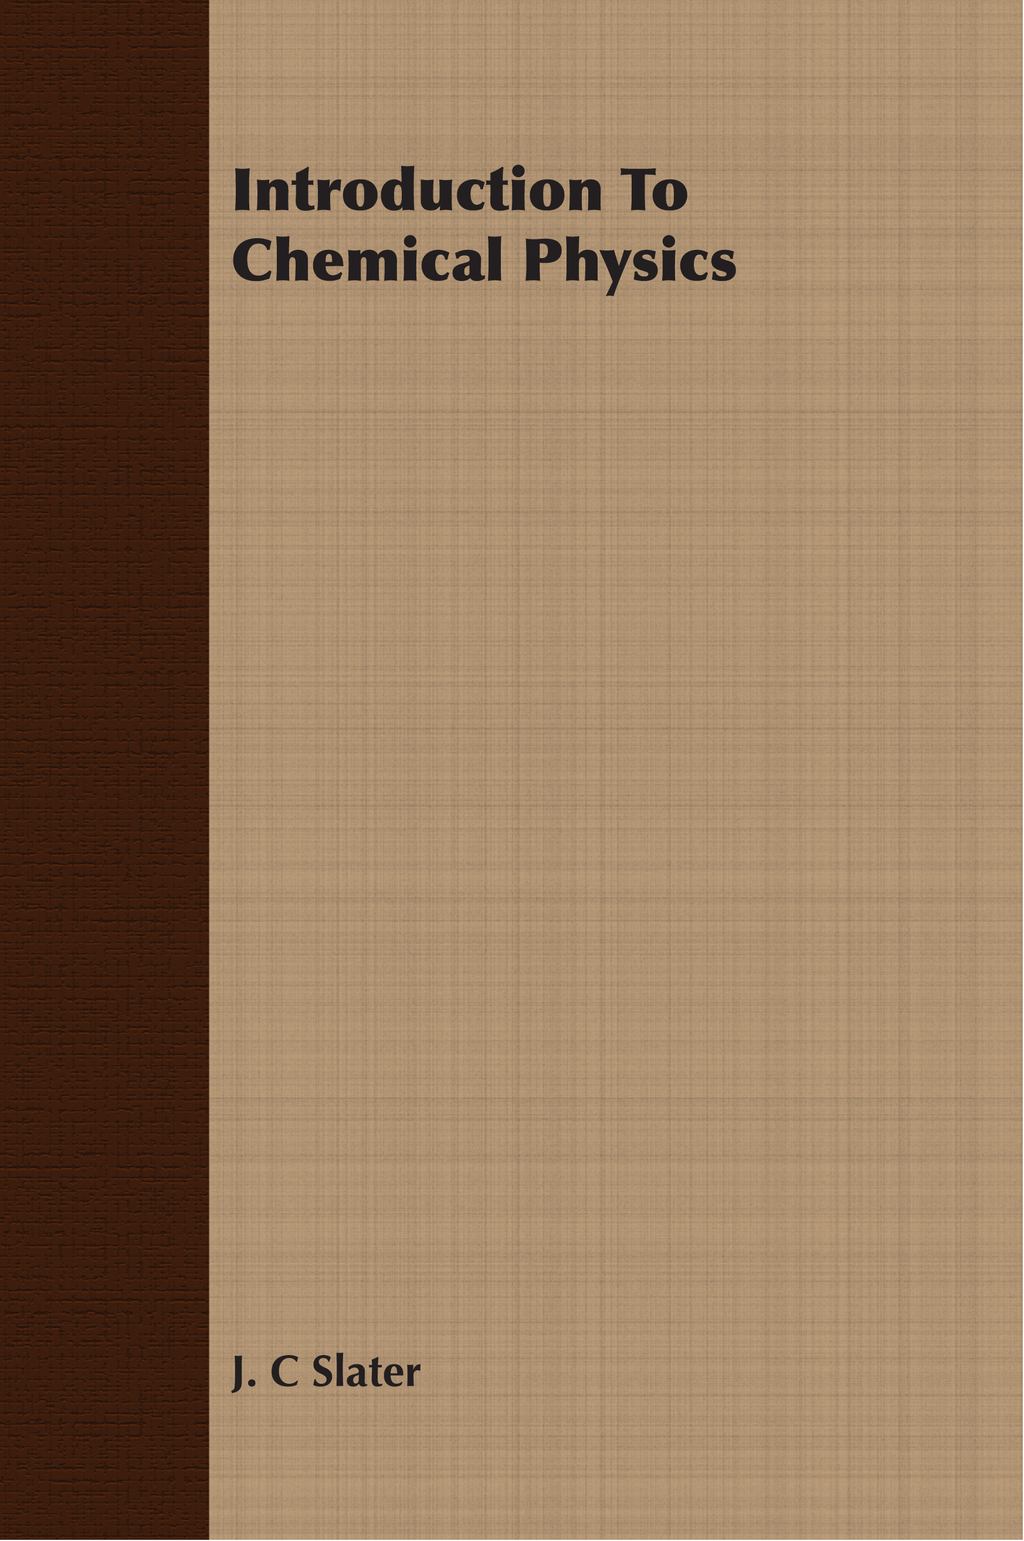 Introduction To Chemical Physics By: J. C. Slater